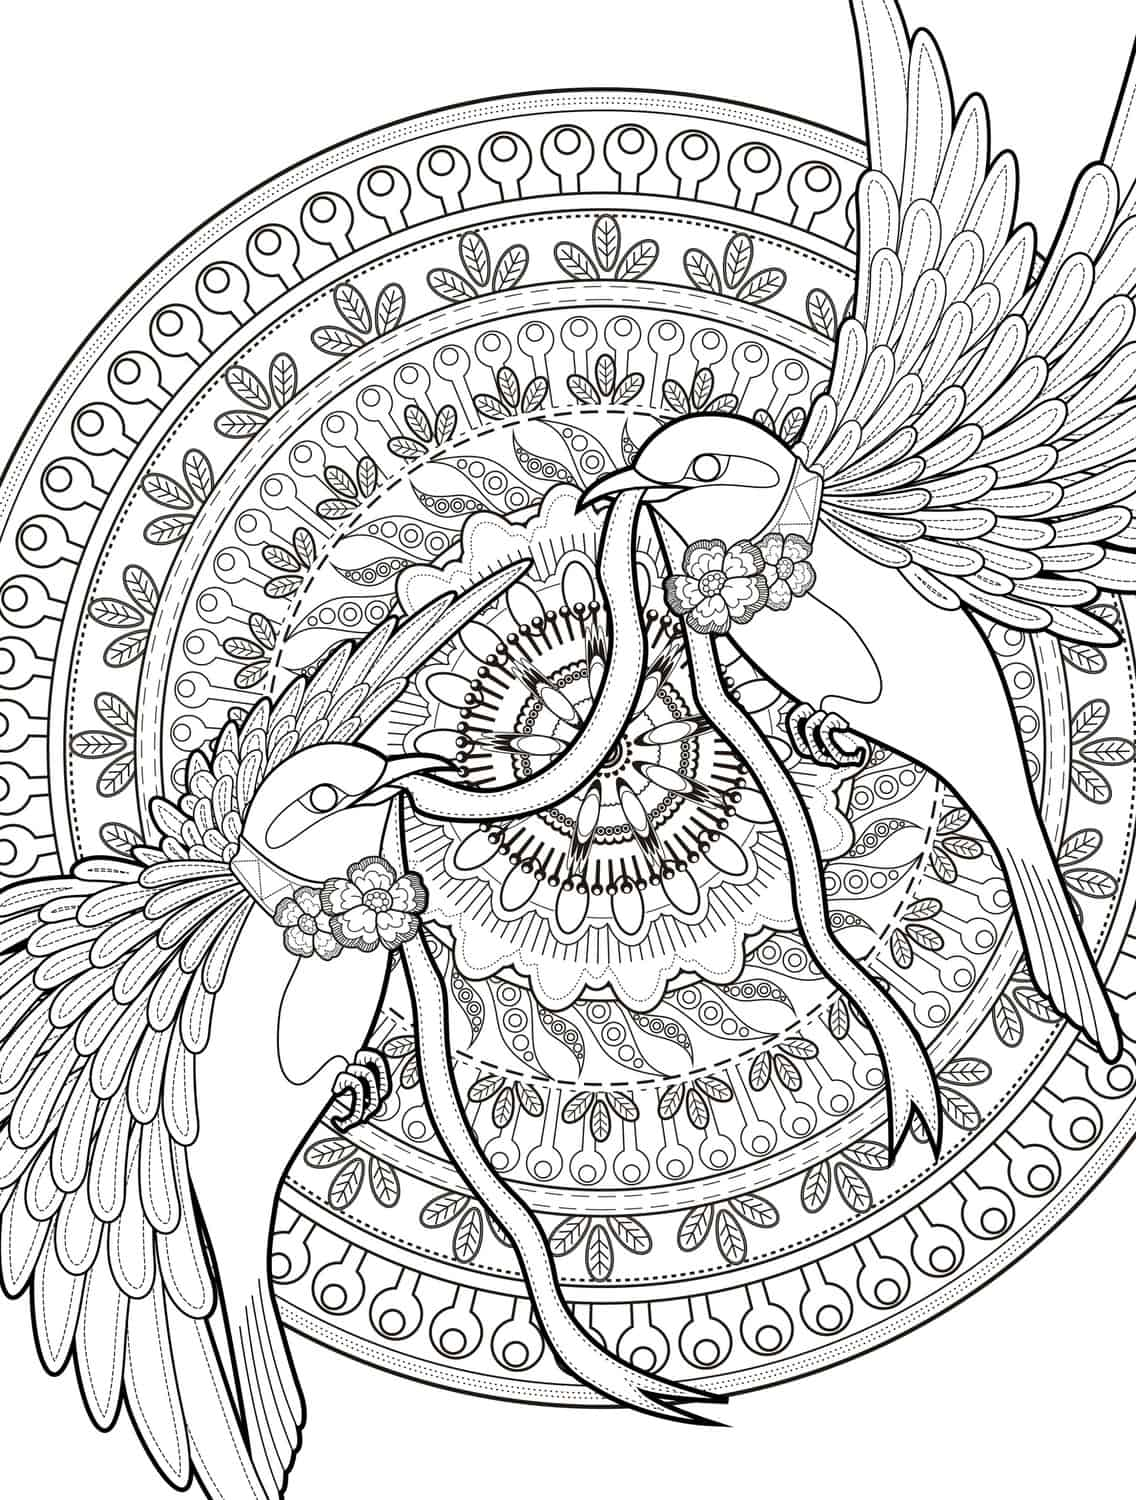 Printable drawing pages for adults - Adult Coloring Pages With Birds Free Downloadable Web